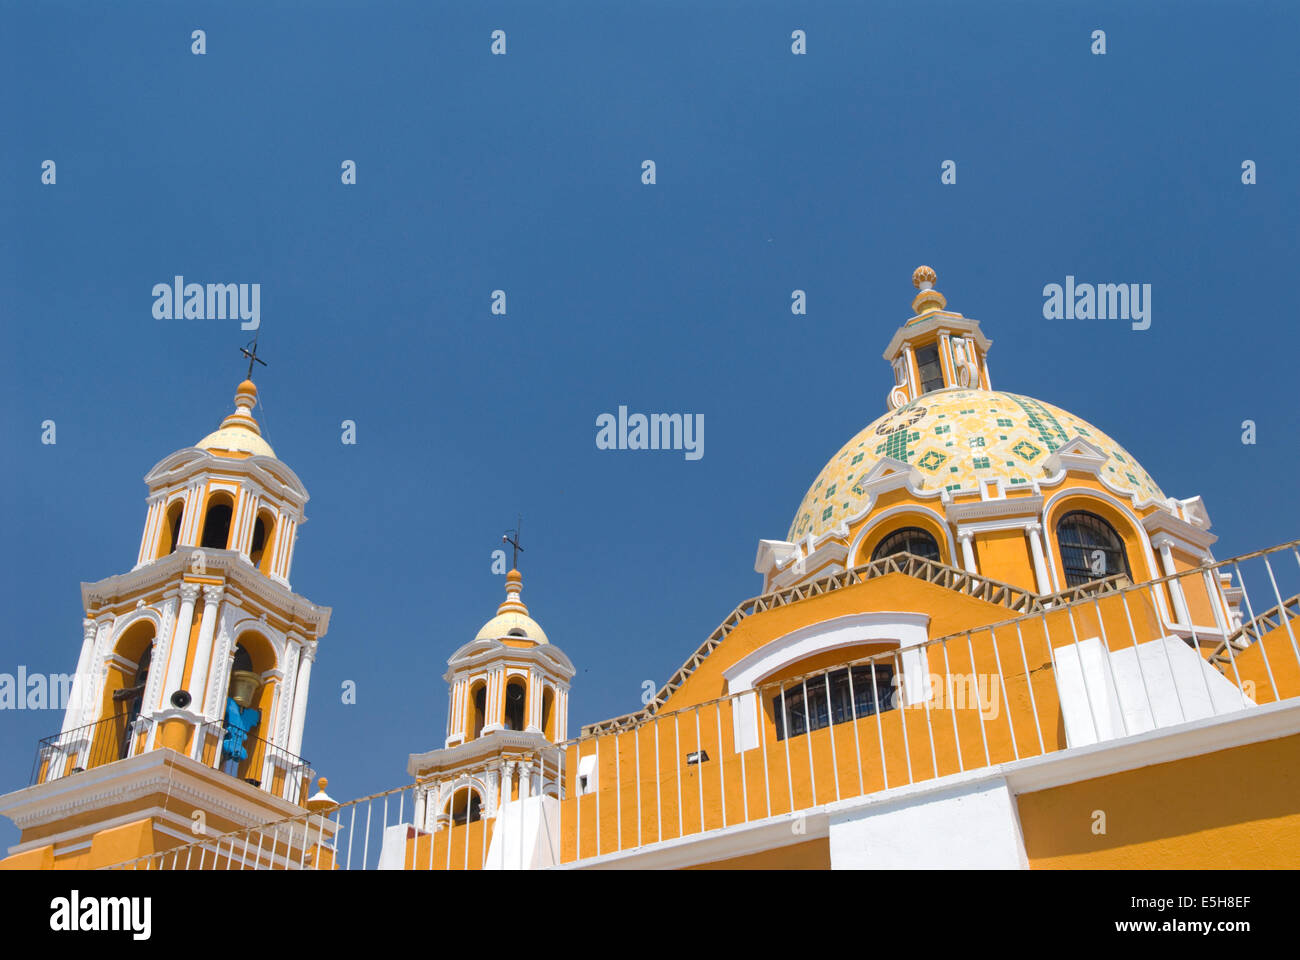 Exterior of the Church of Neustra Senor de los Remedios or Our Lady of Remedios in Cholula, Mexico - Stock Image